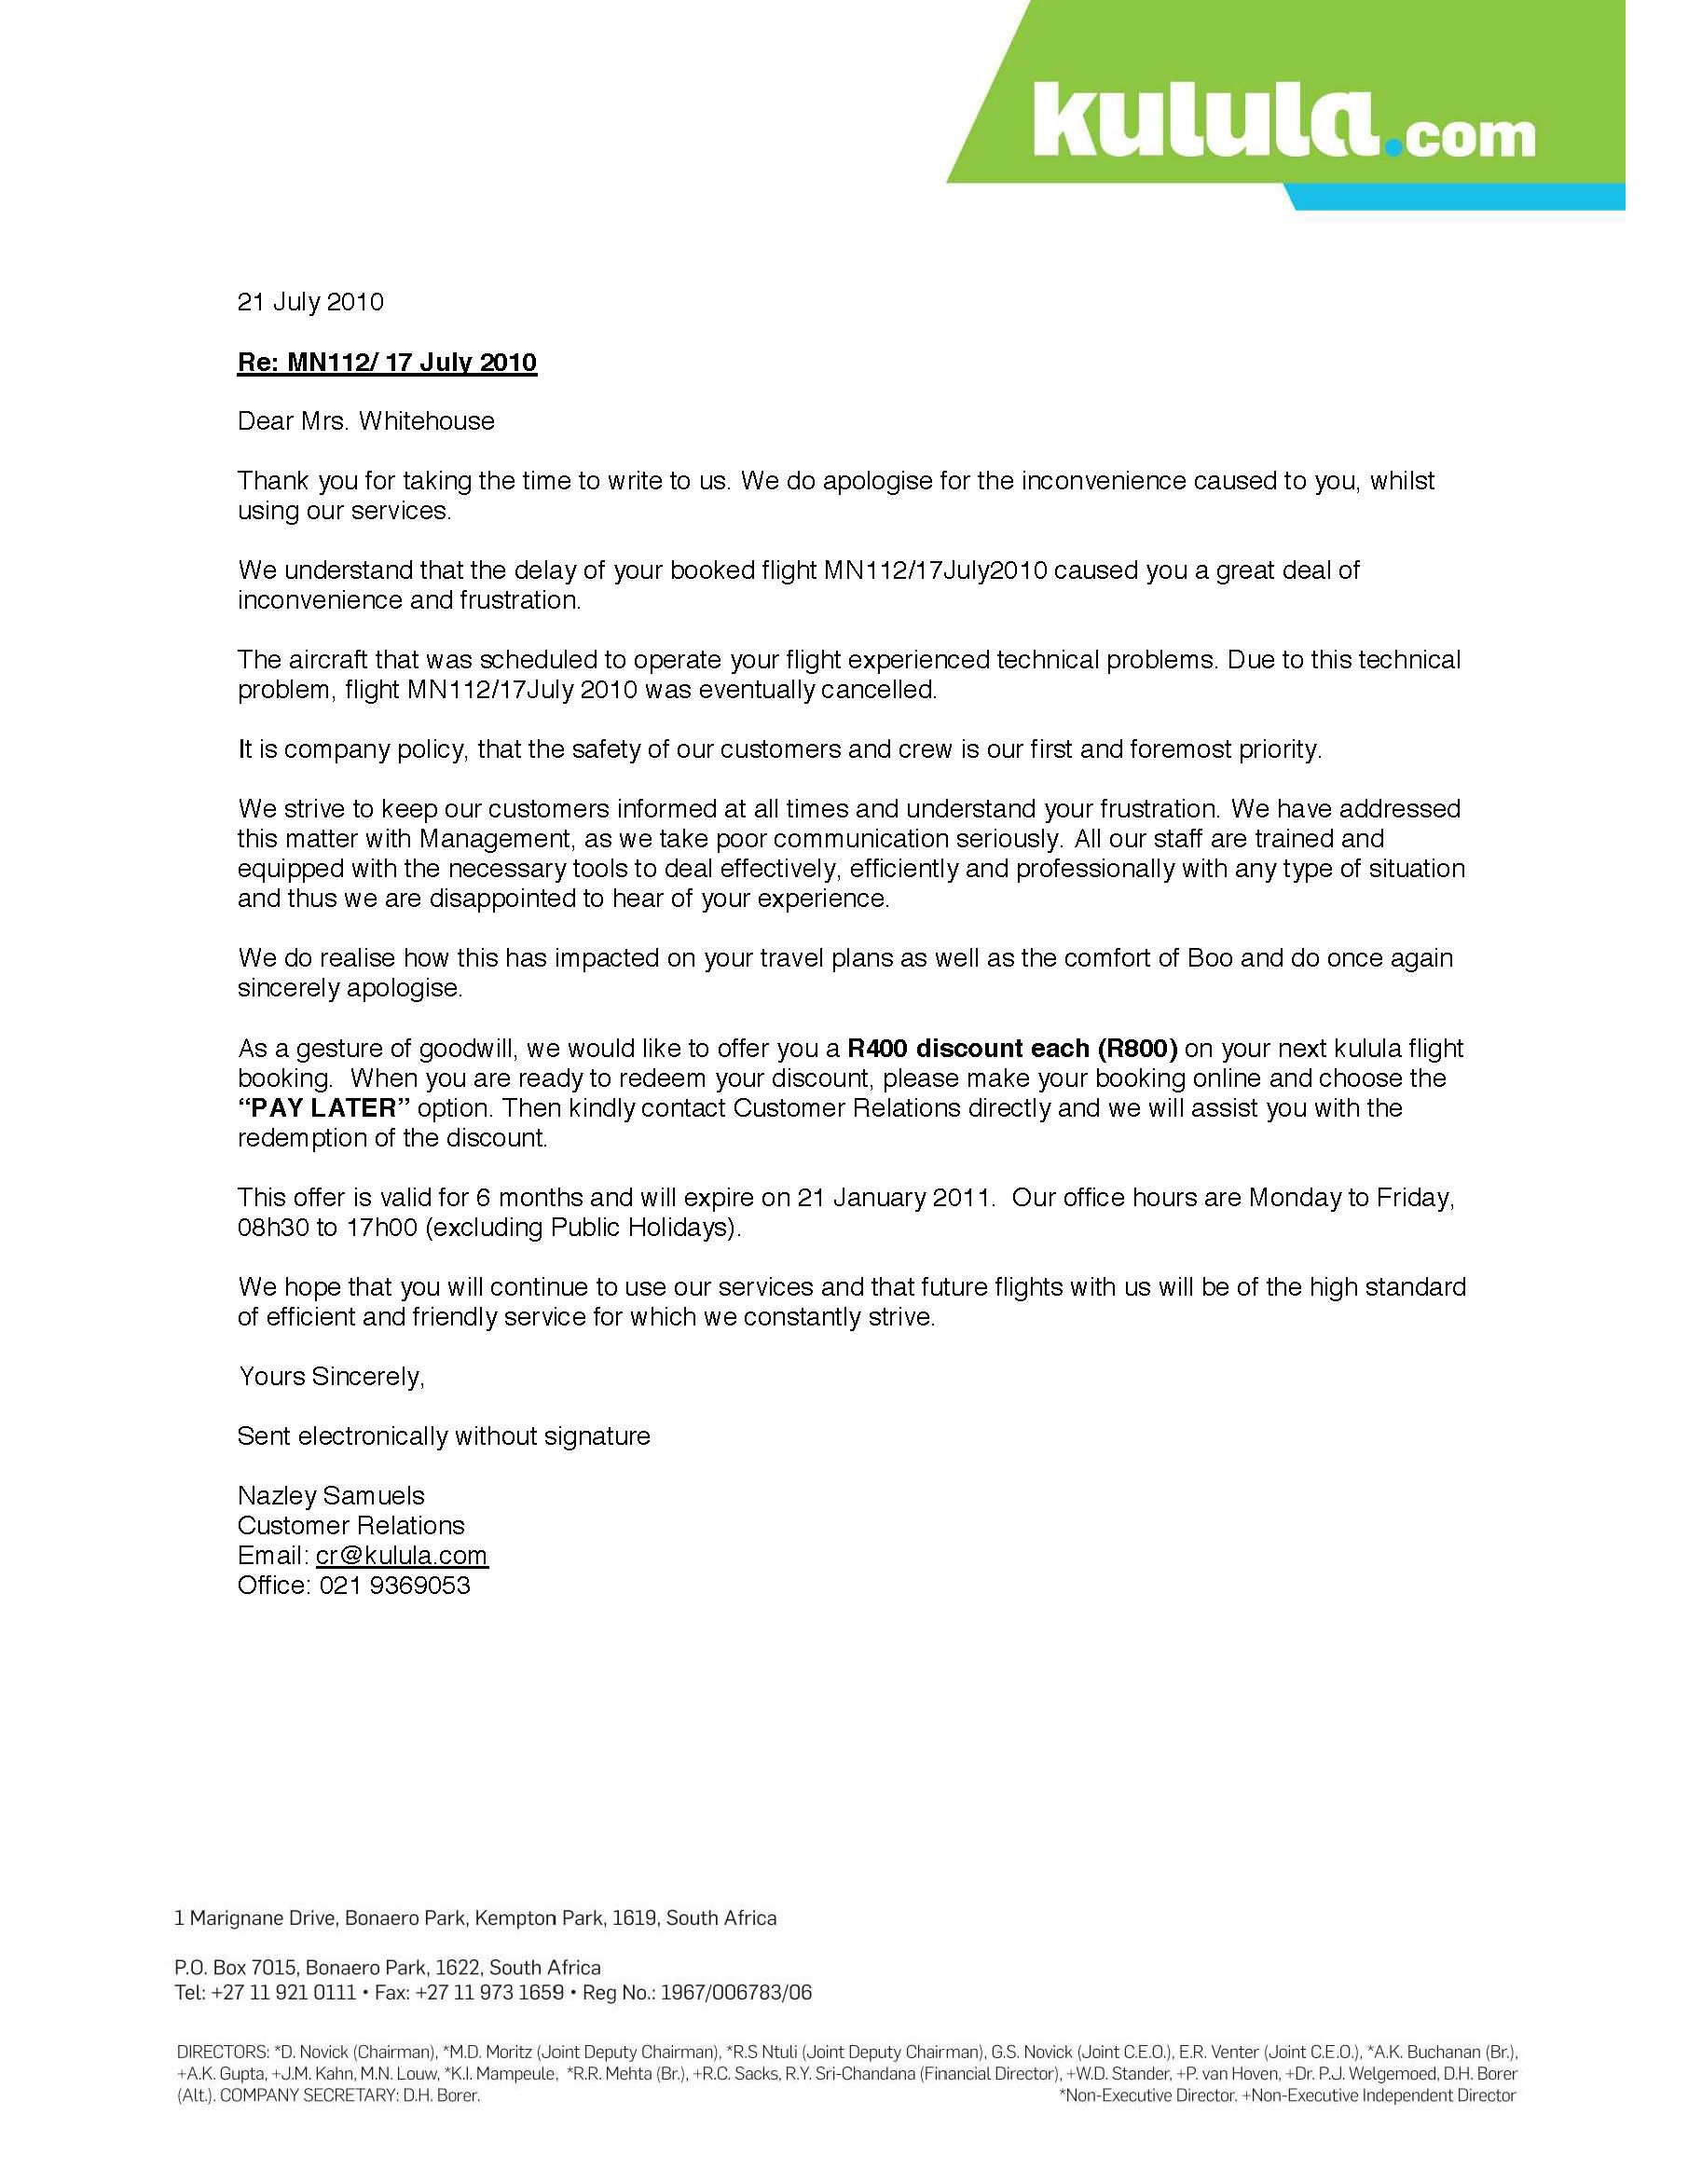 amanda sevasti apology from kululaletter of apology business amanda sevasti apology from kululaletter of apology business letter sample